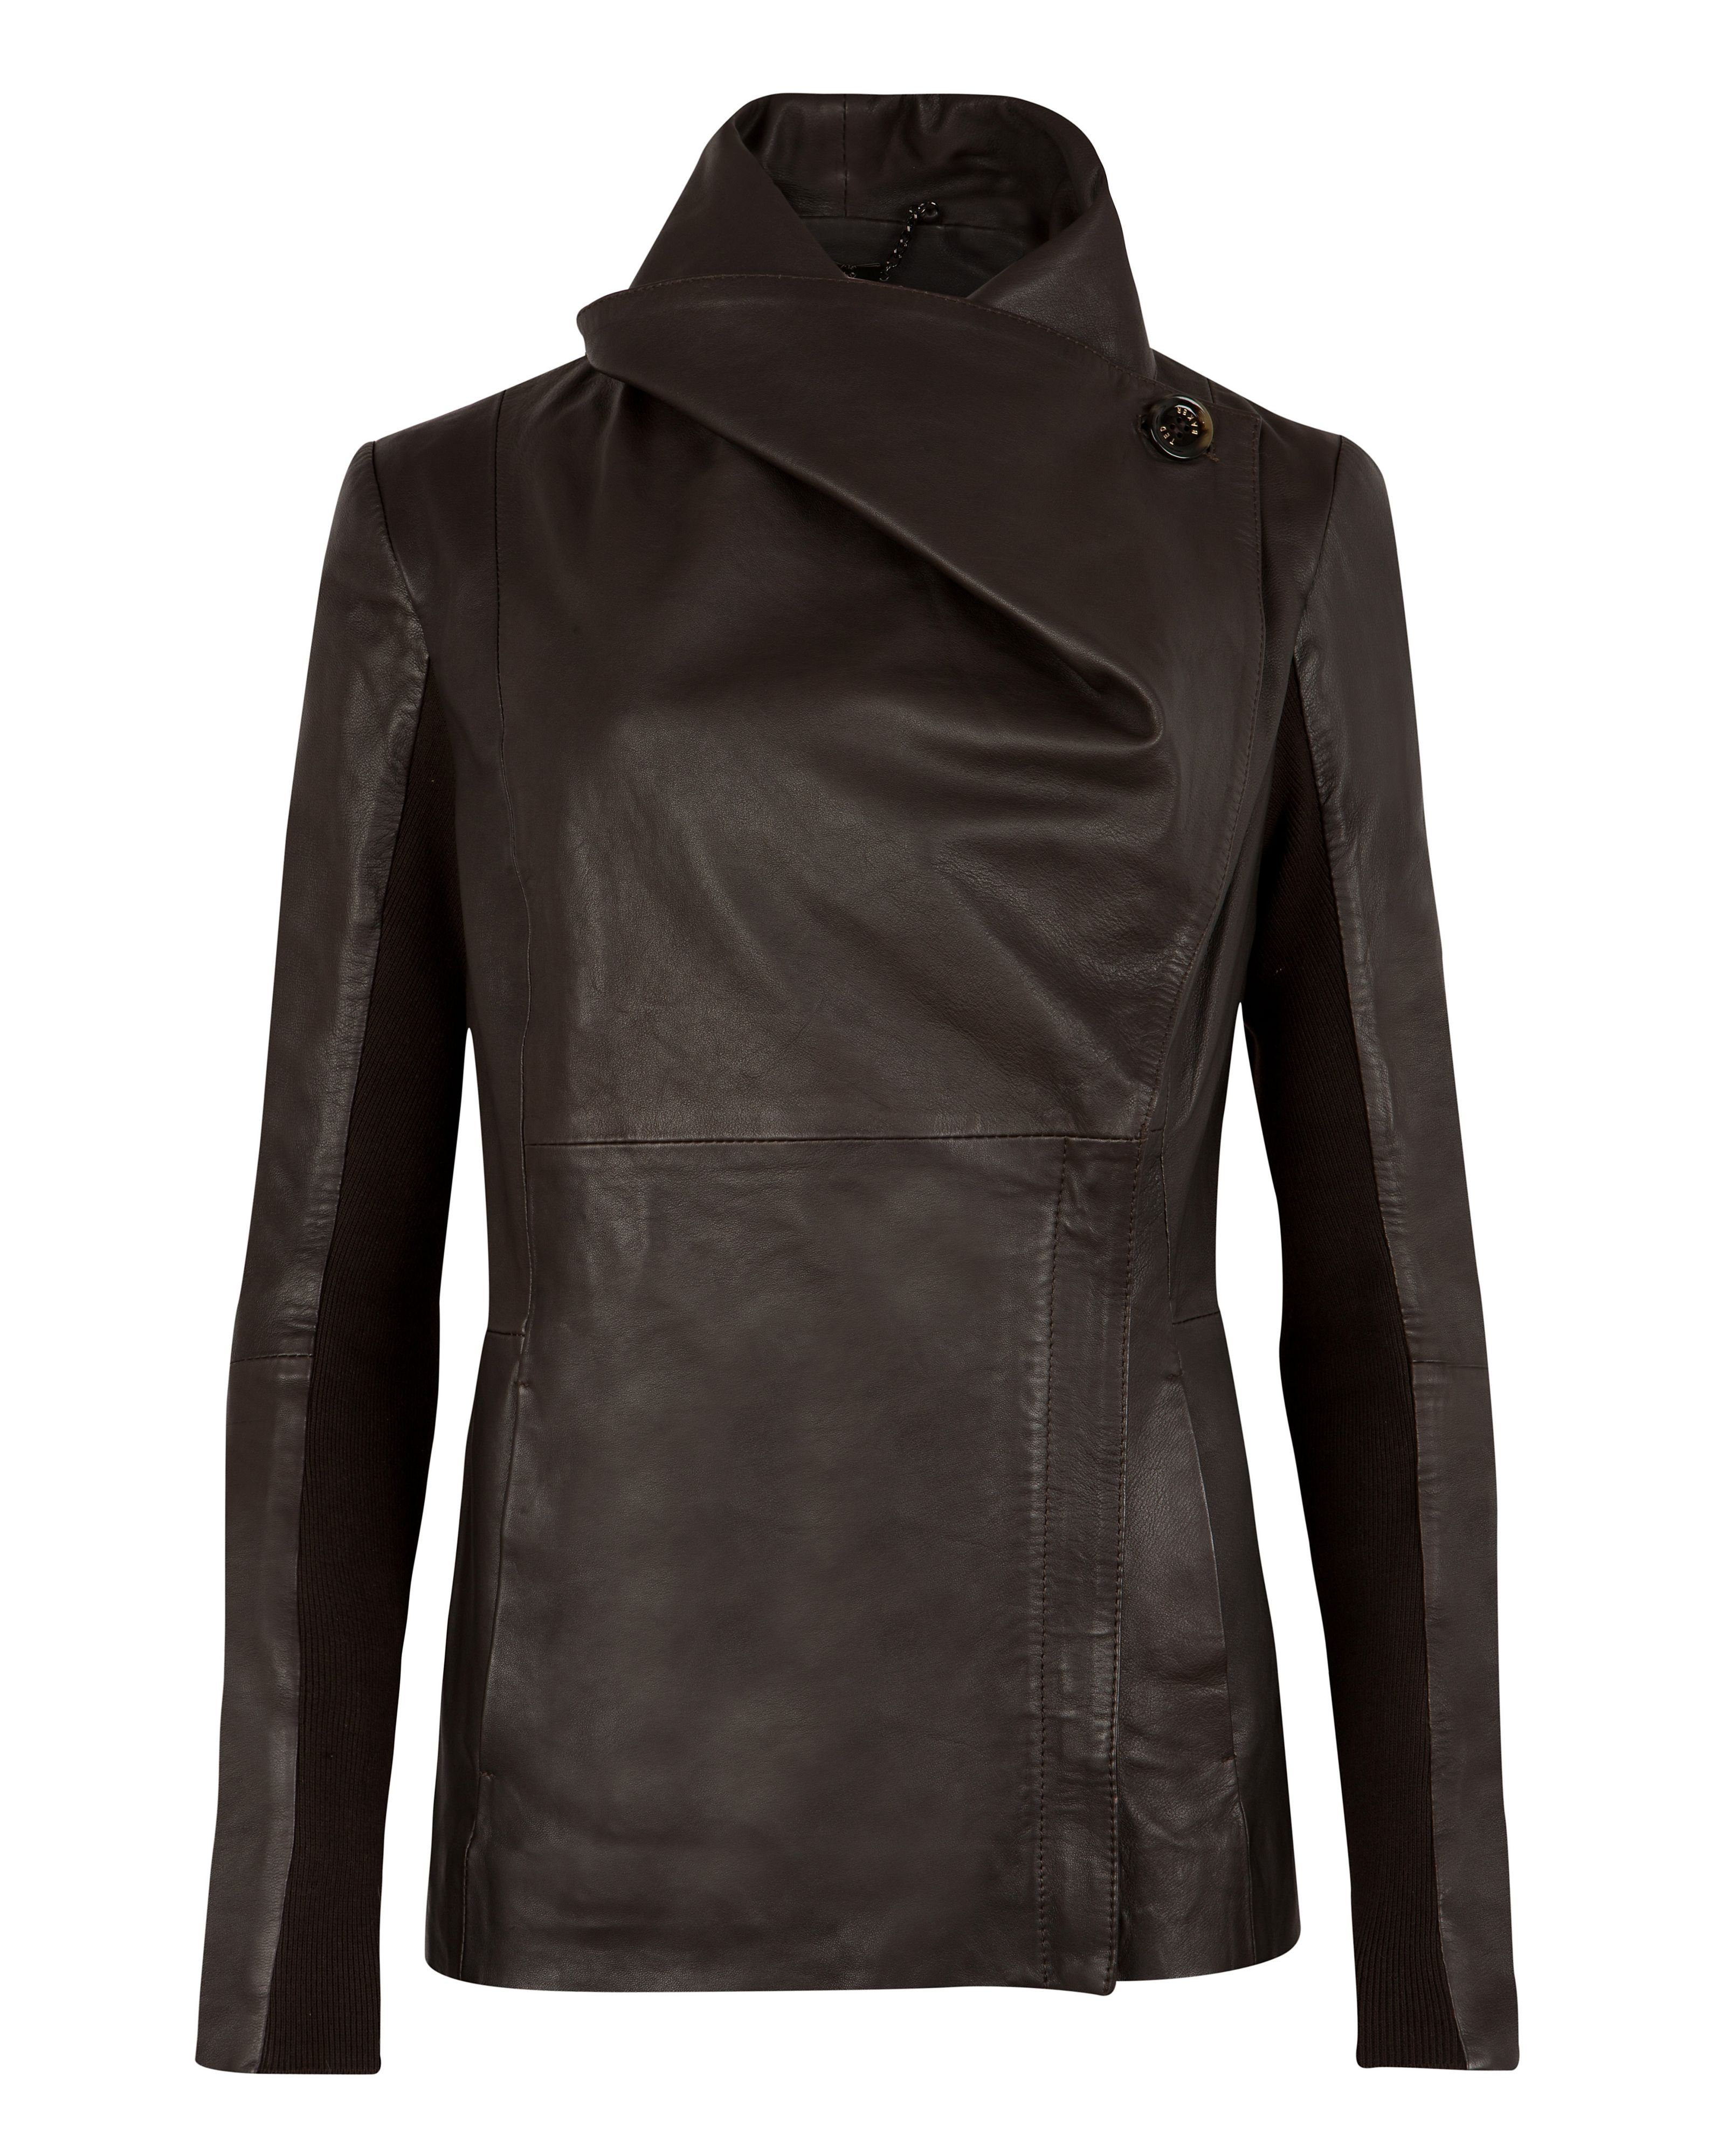 Haszel wrap over leather jacket